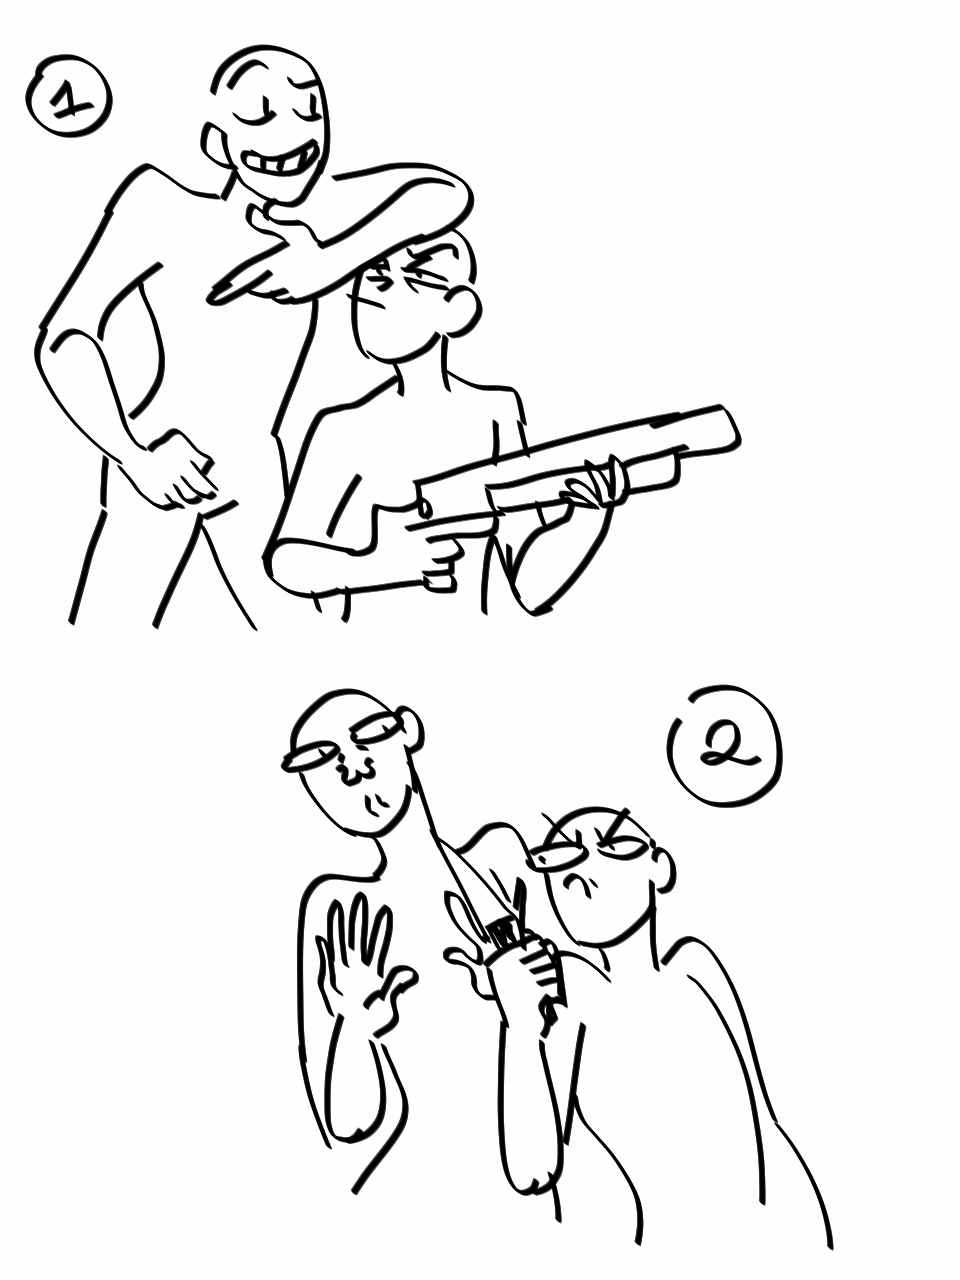 Draw your otp/ocs with weapons imagine OCs Pinterest